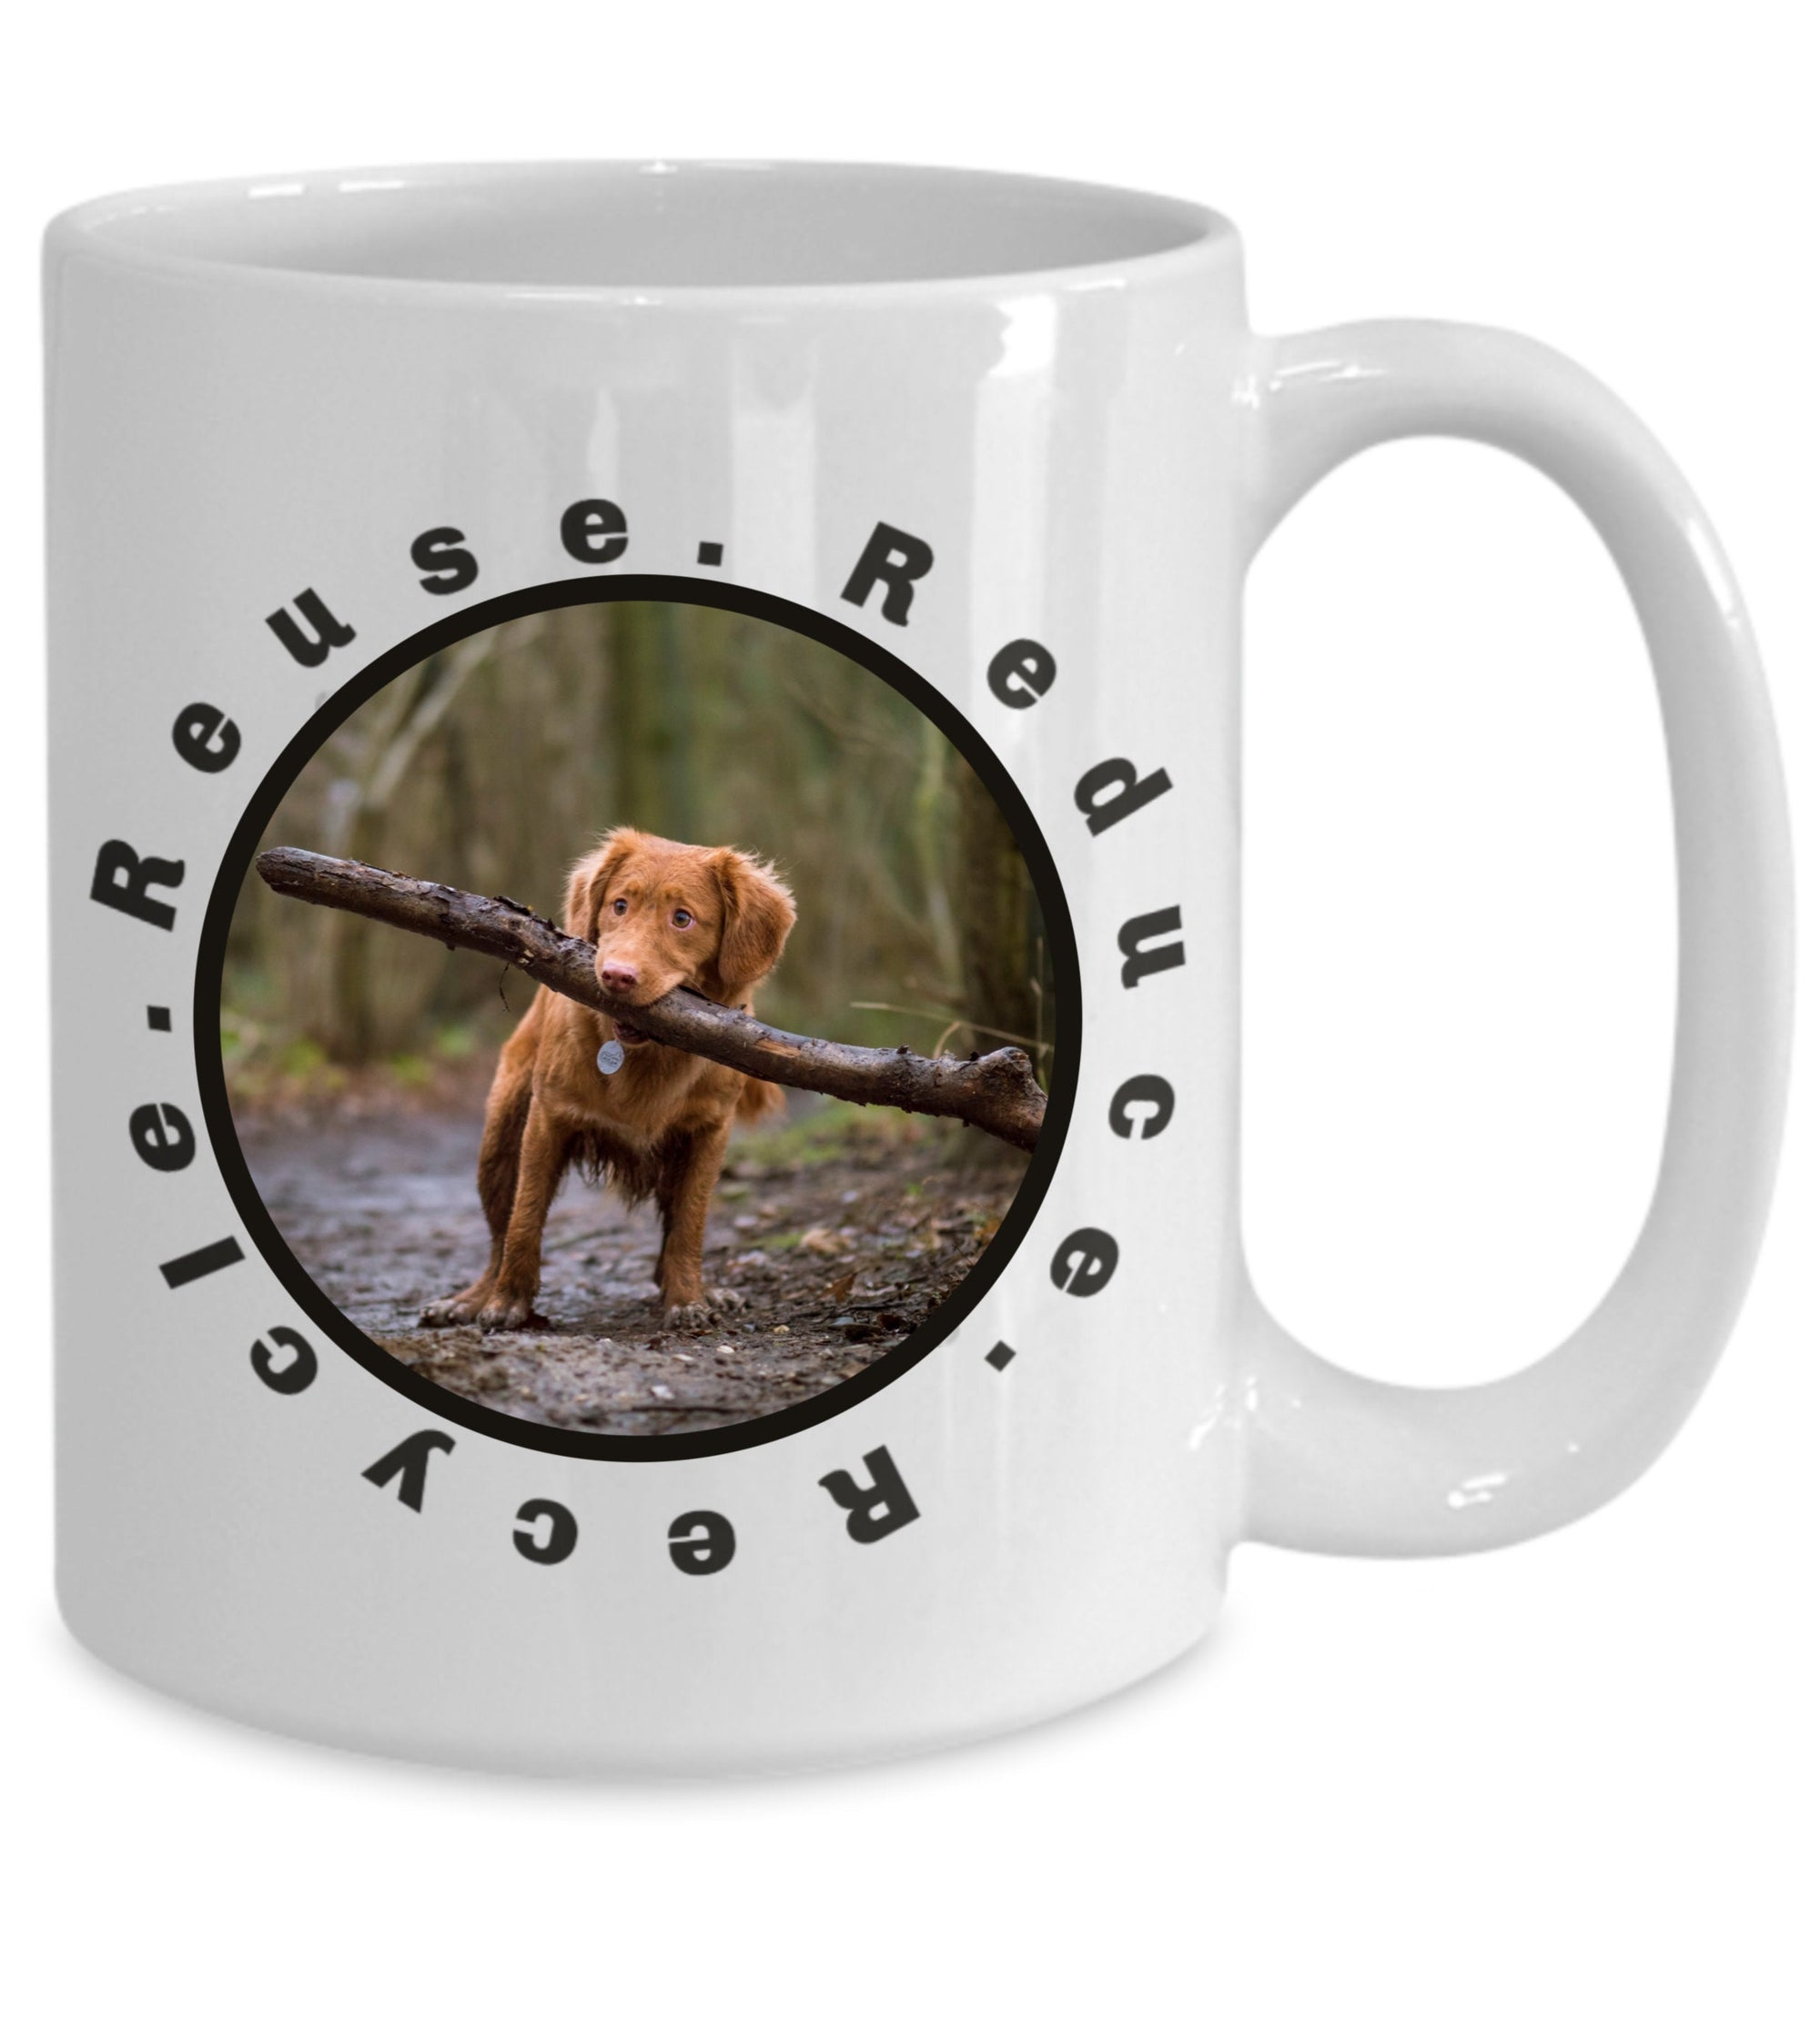 Custom Pet Coffee Mug Personalized Photo Mug with Custom Name for Pet Owners Dog Lover Mug Dog Mom Gift Recycle Coffee Mug for Puppy Owners - PetsDoo